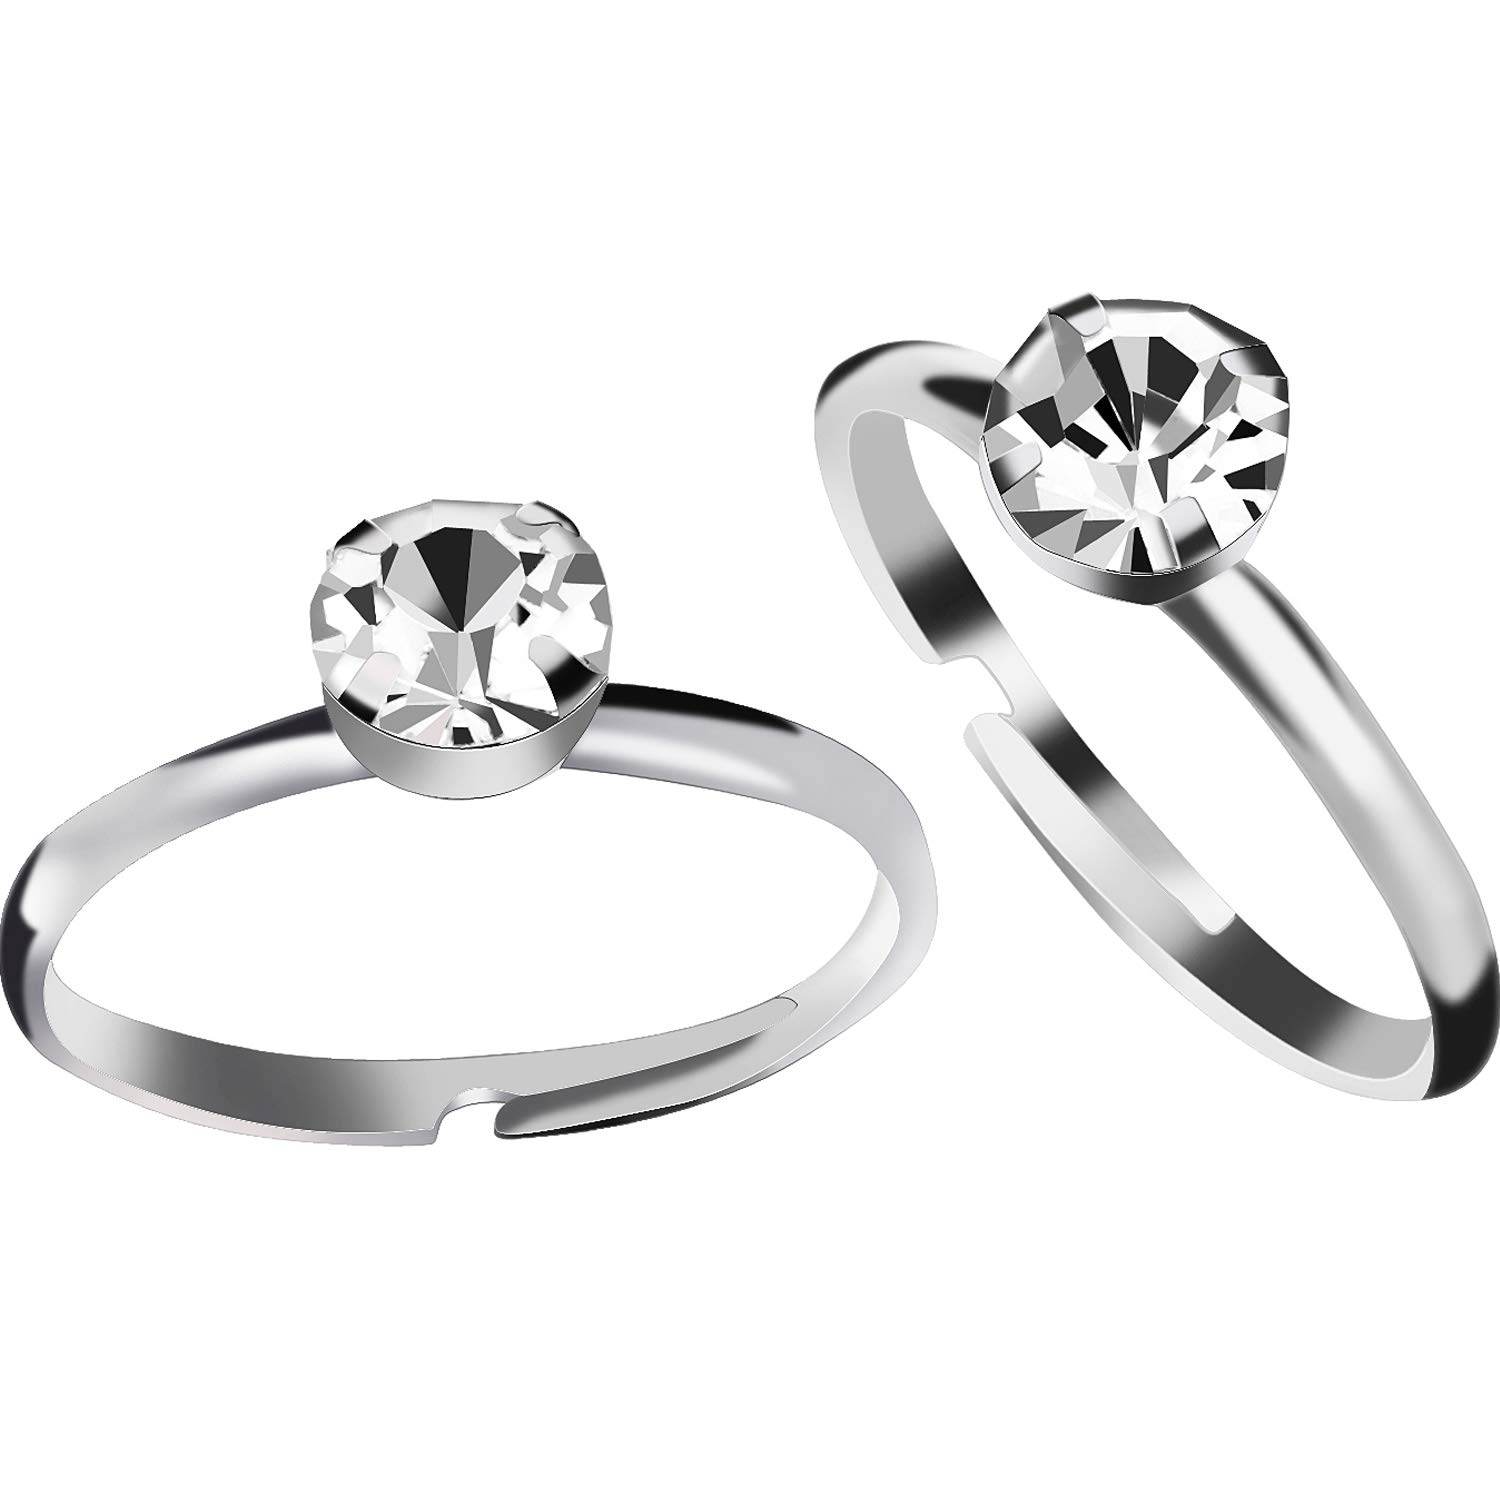 Amazon Aboat 52 Pack Bridal Shower Rings Silver Diamond For Party Supply Table Decorations Favor Accents Toys Games: Cake Topper Wedding Silver Diamond Ring At Websimilar.org